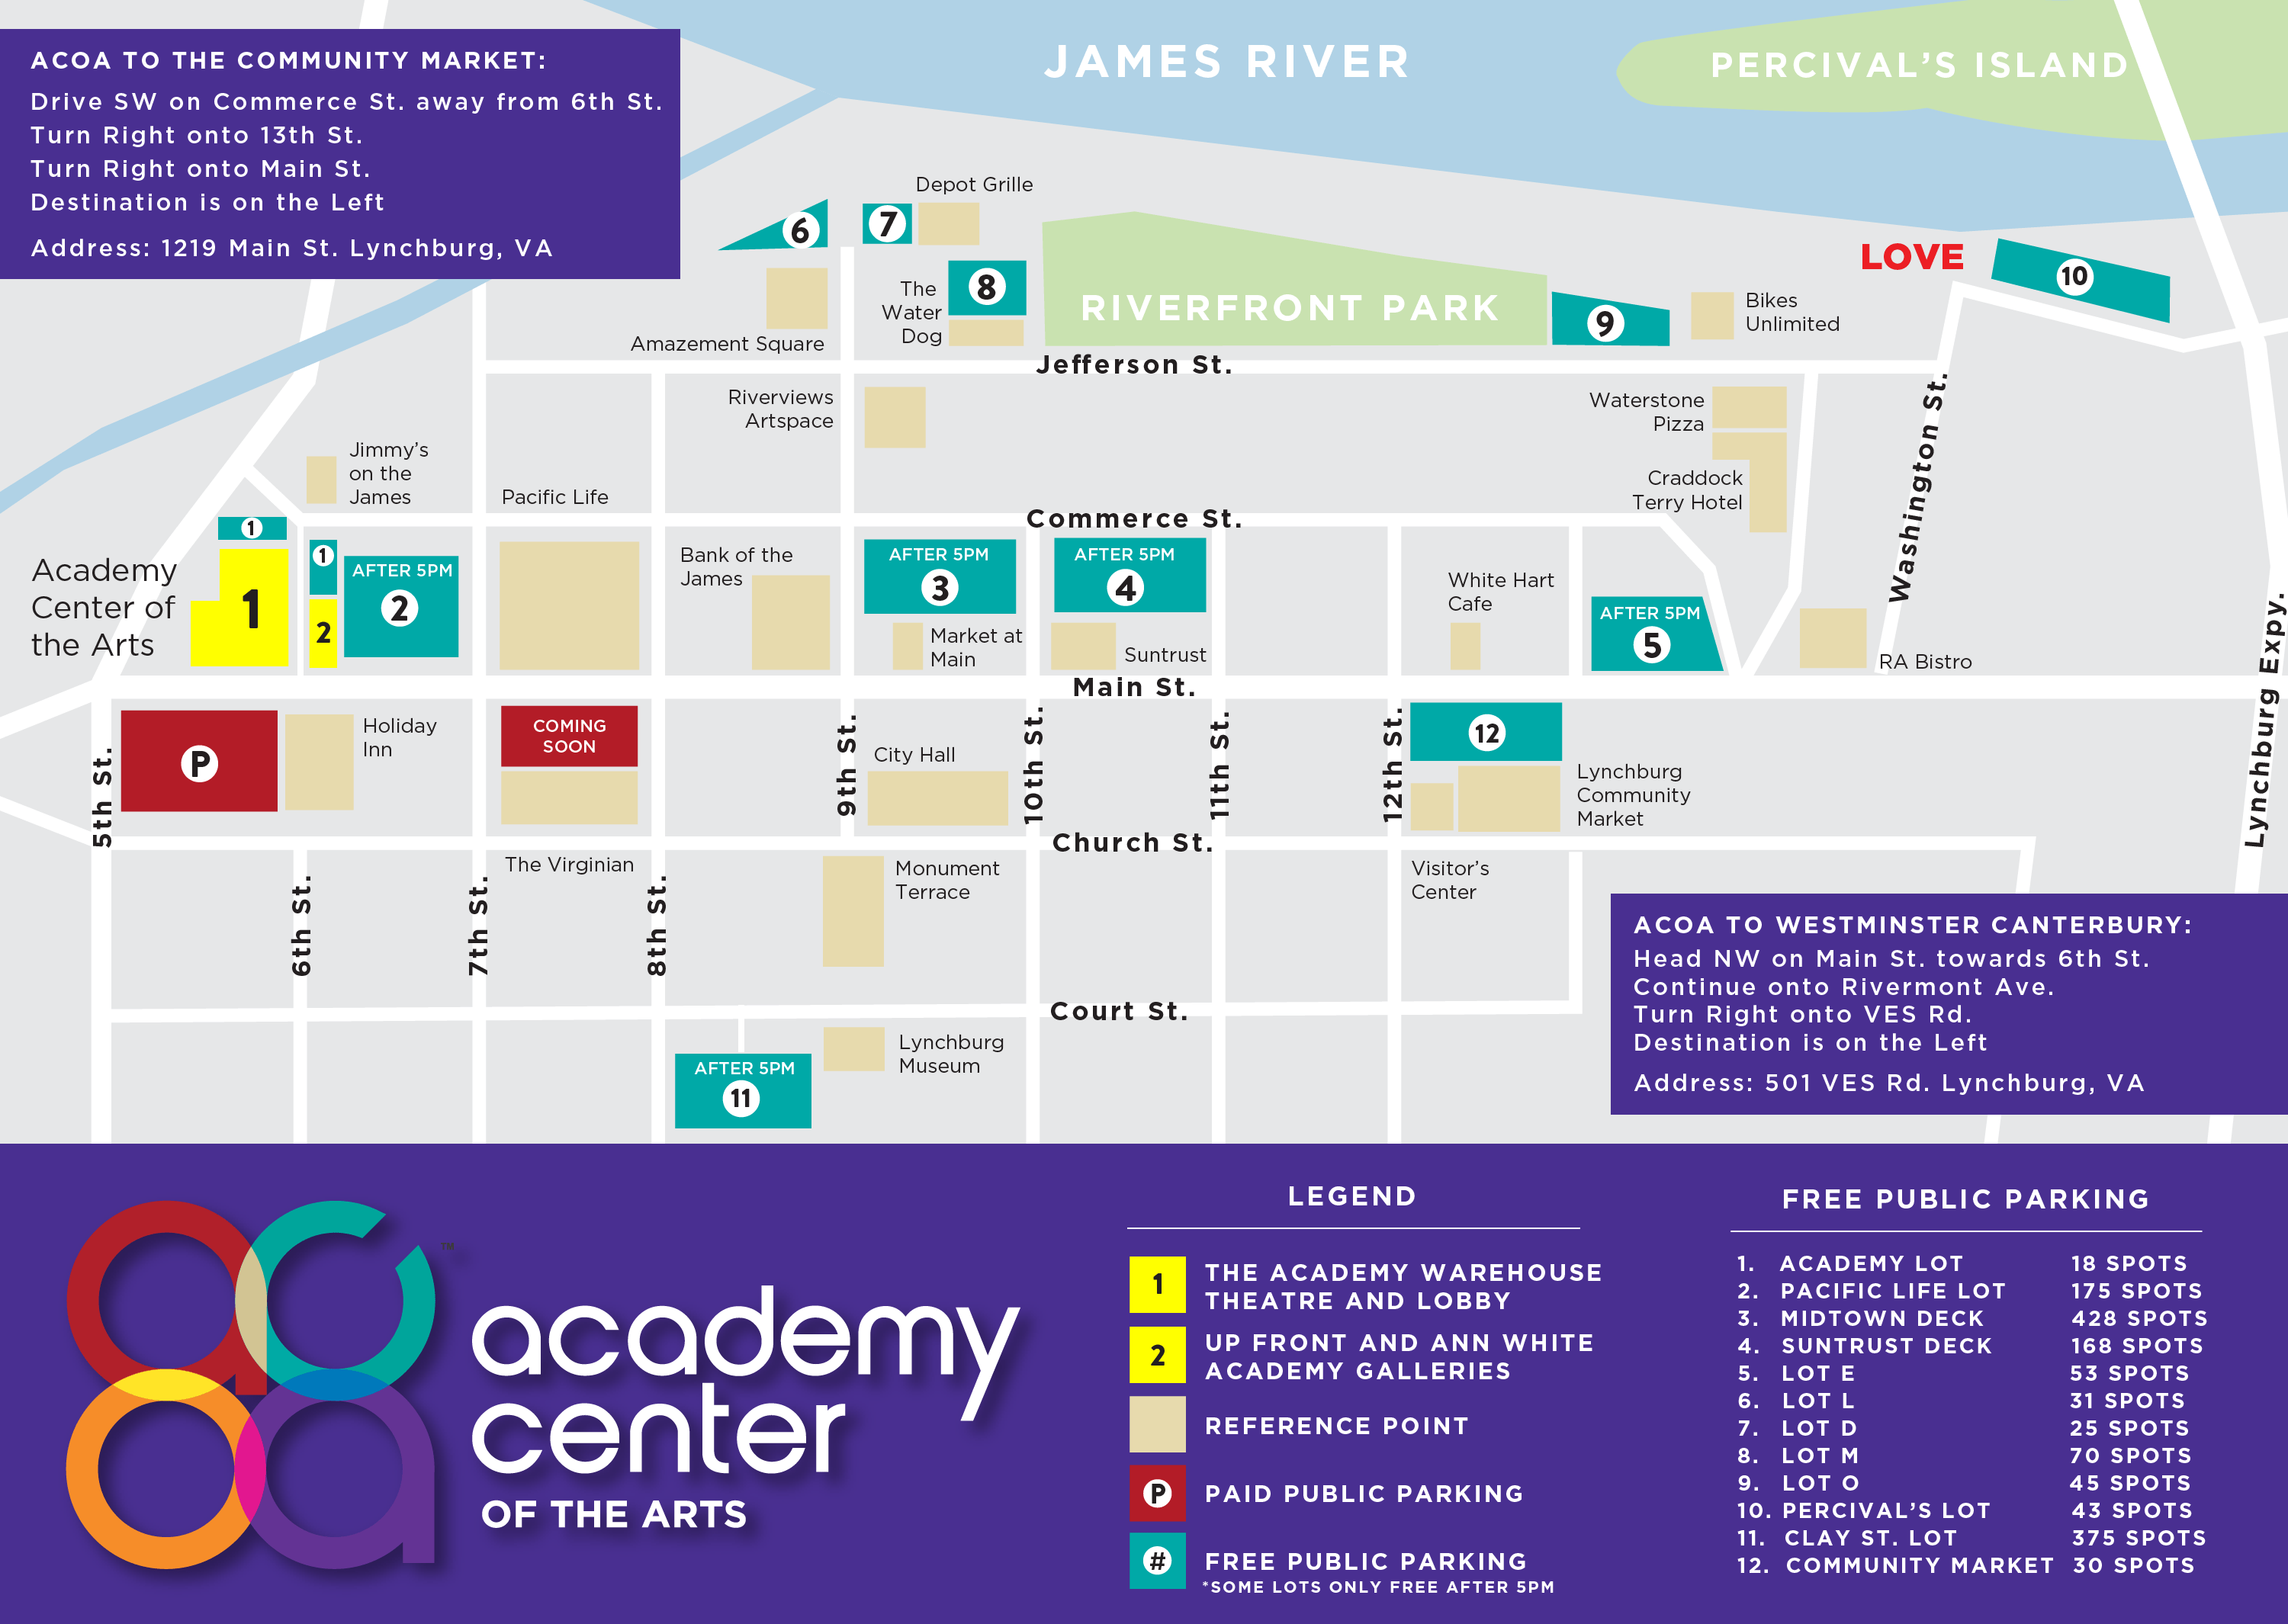 Academy Center of the Arts